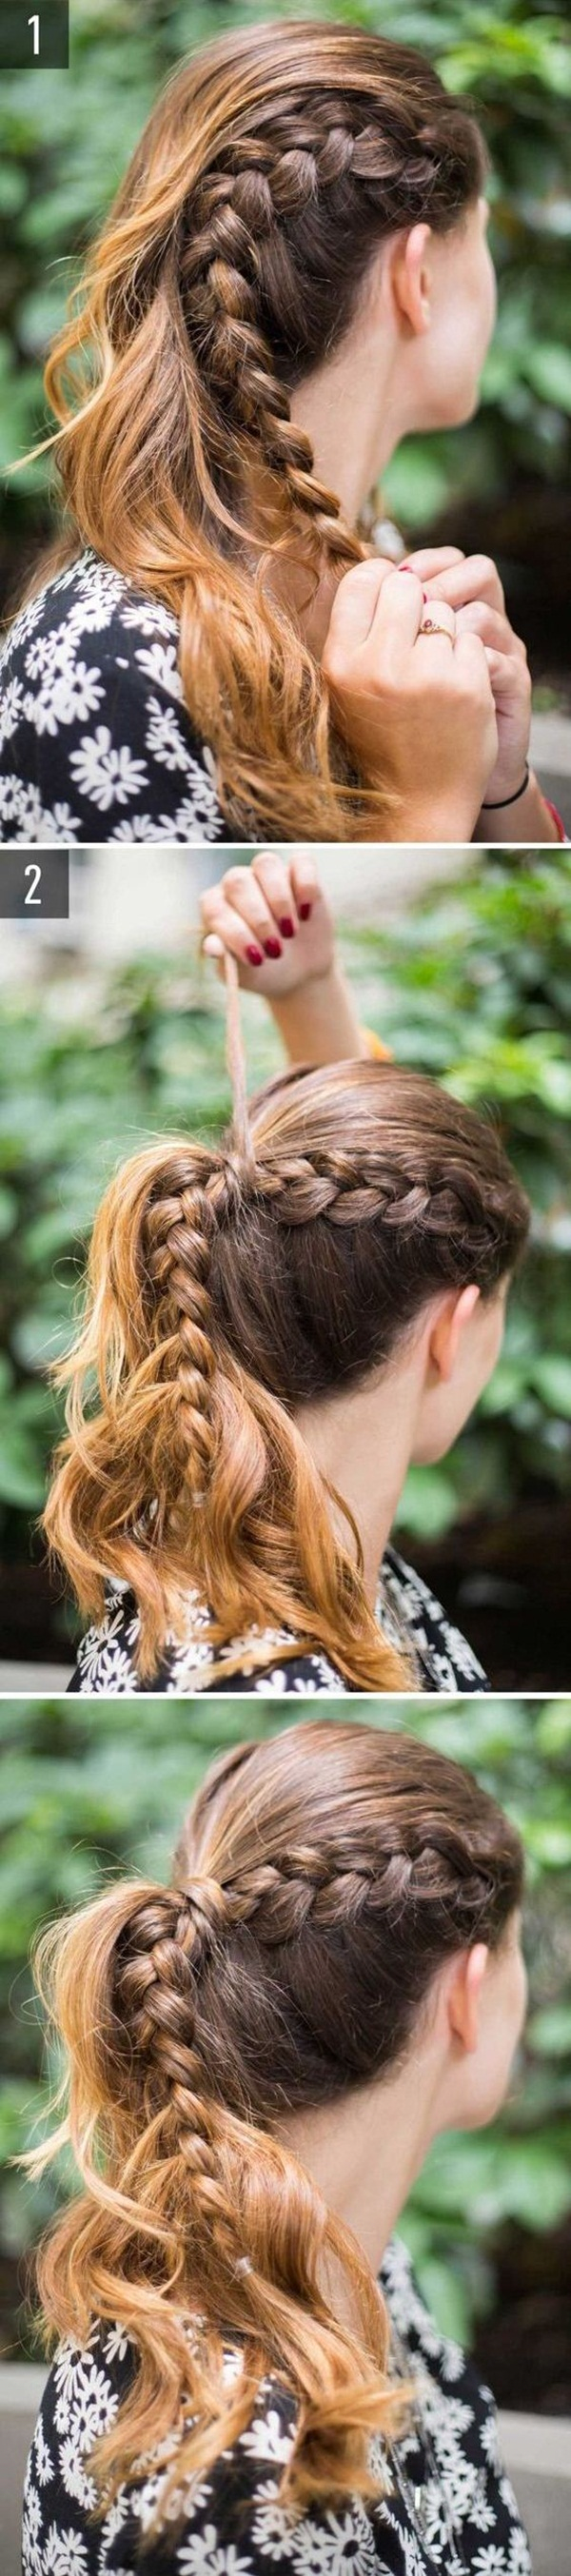 Easy Hairstyles For School (2)